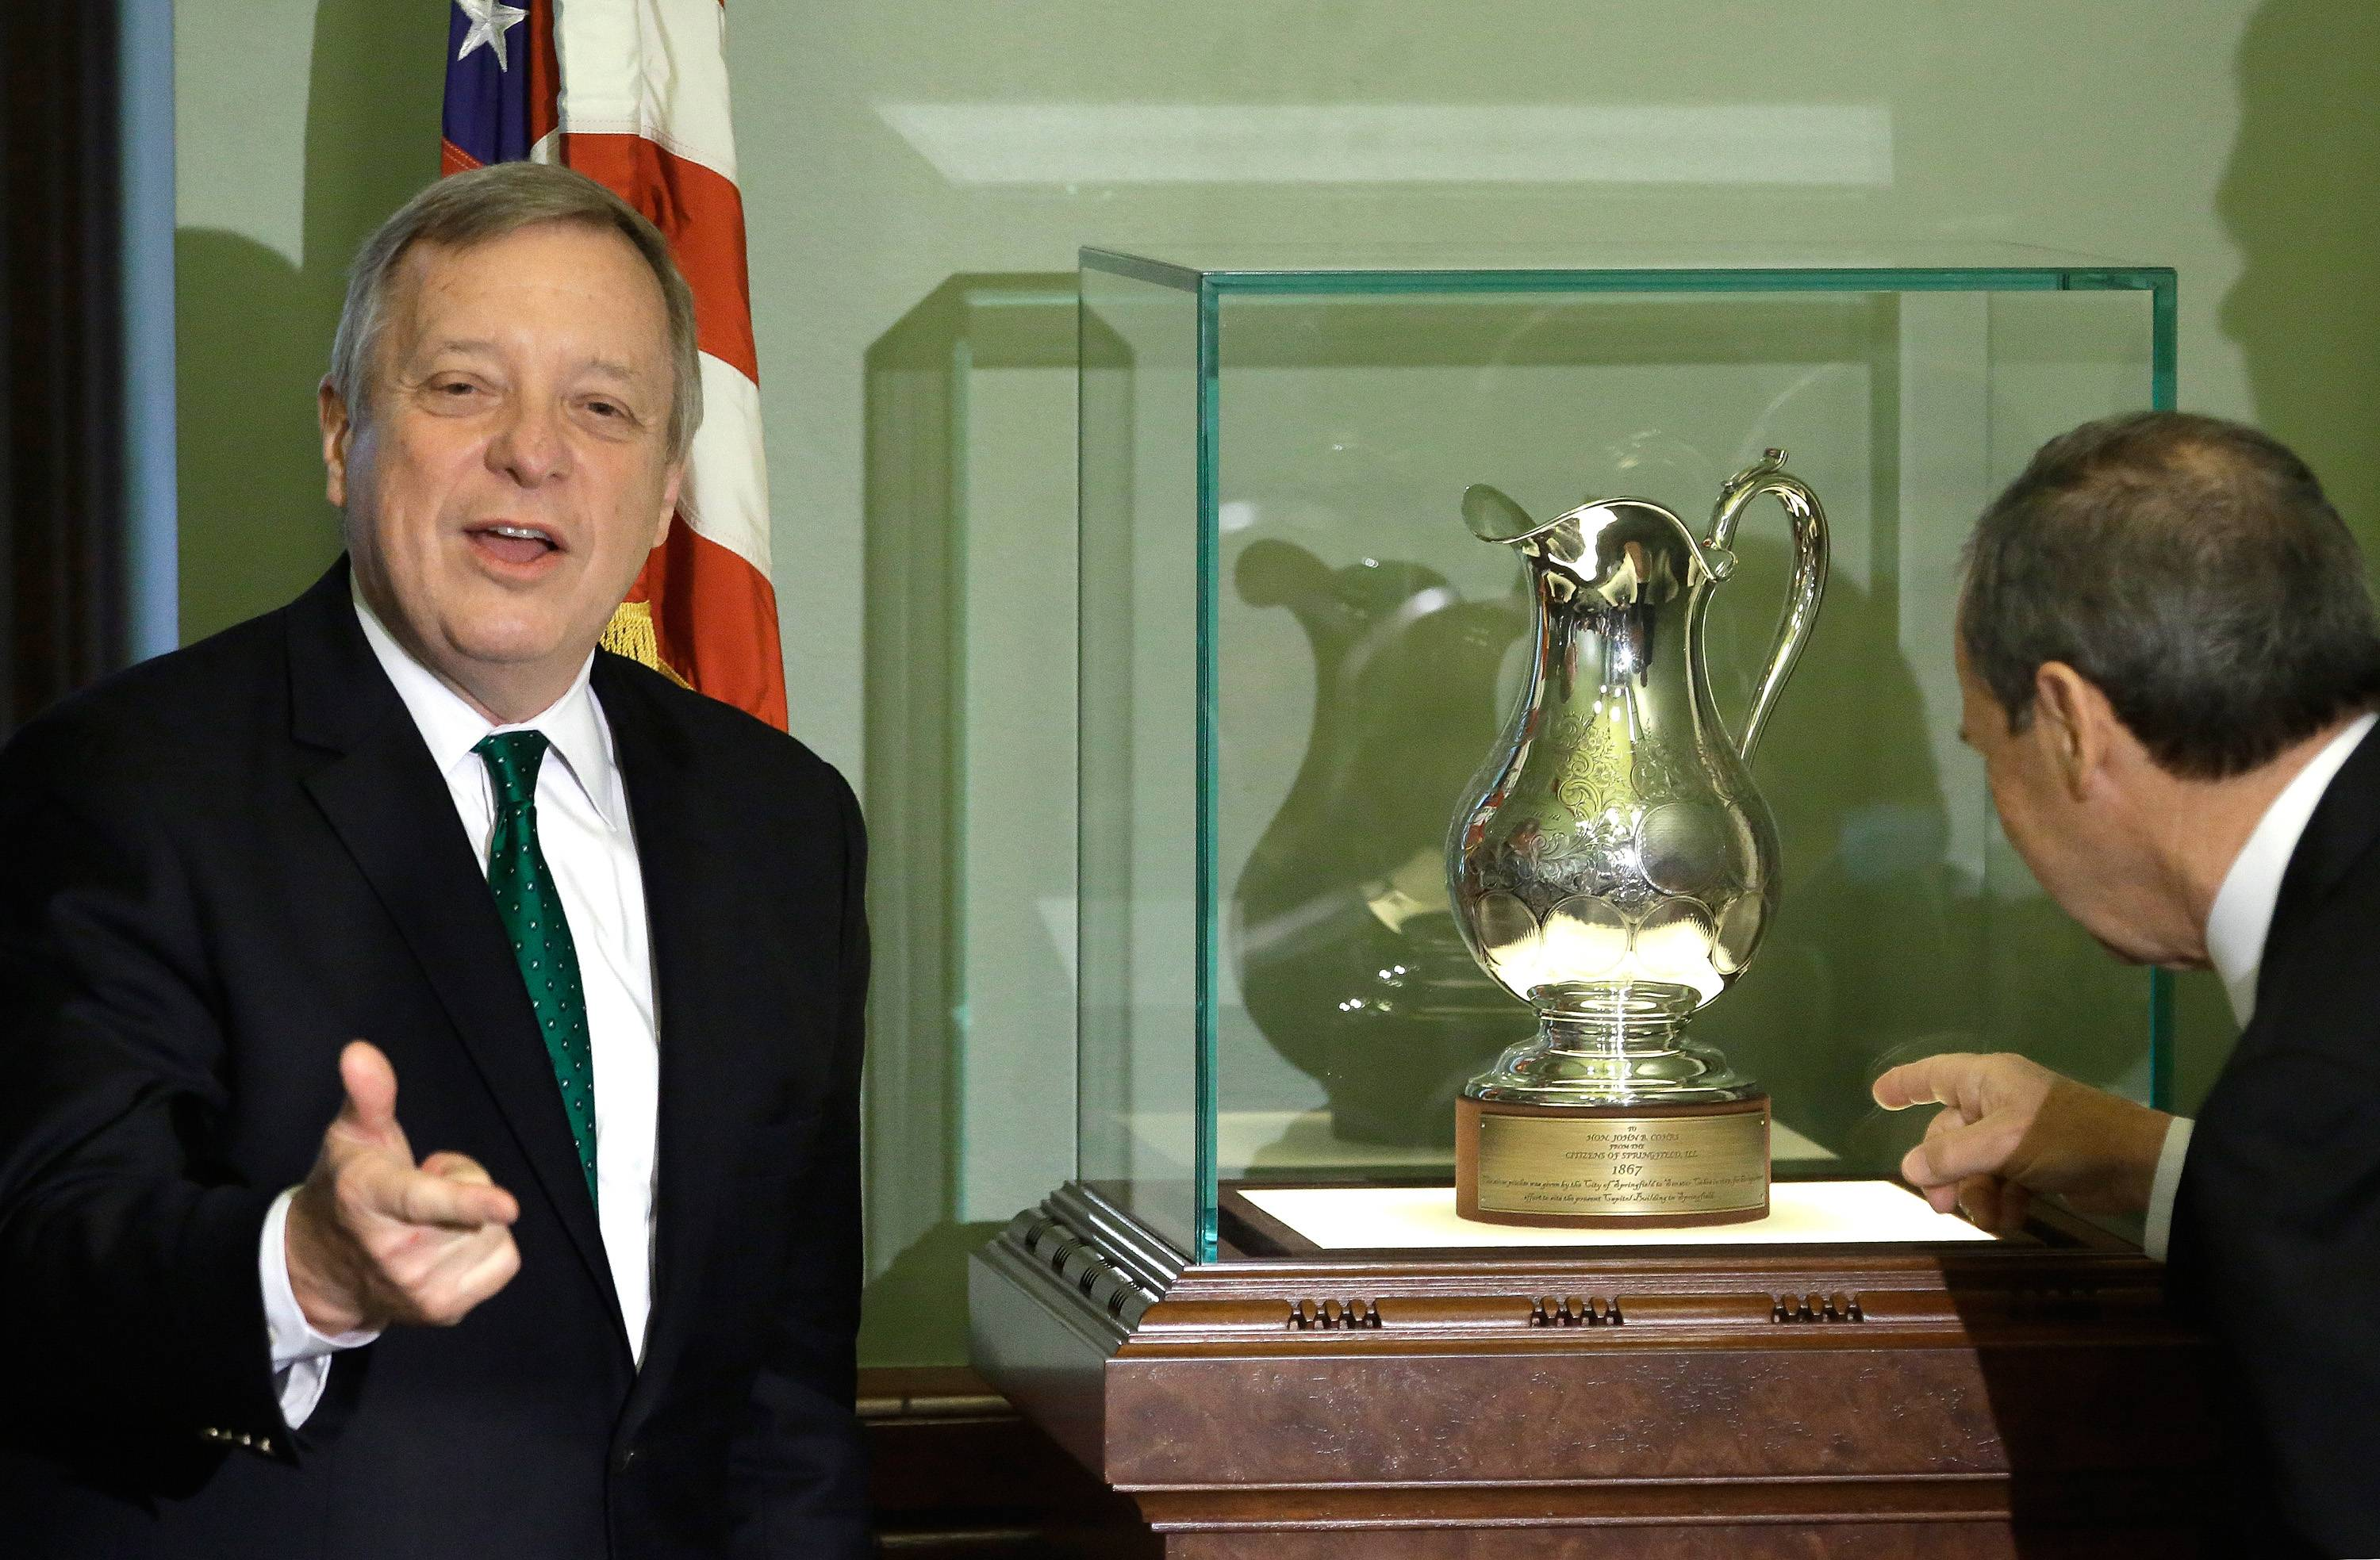 U.S. Sen. Dick Durbin, left, presents a silver pitcher that had been absent from the state for nearly 150 years. On the right is Illinois Senate President John Cullerton.